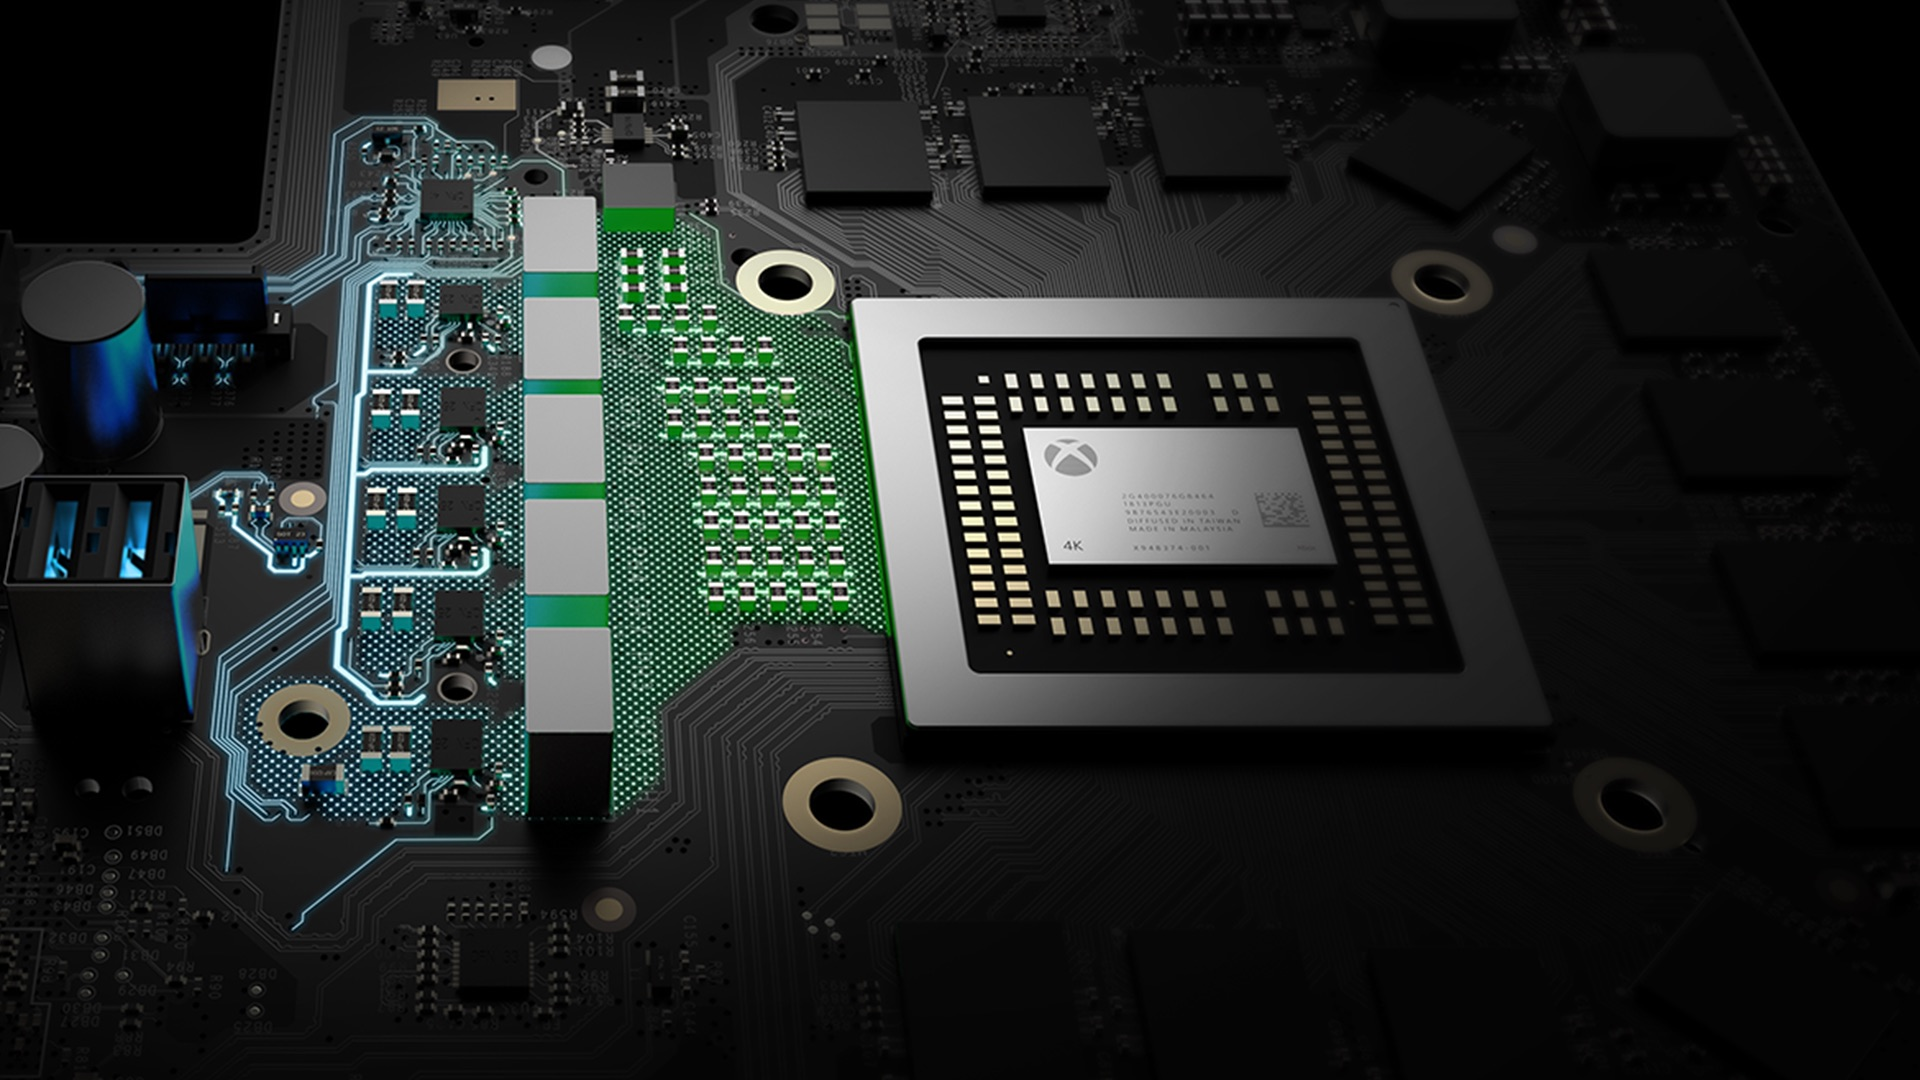 When The Xbox One X Was Announced, There Were Several Talking Points That  Microsoft Made Sure To Emphasize  The Fact That The Console Would Be  Extremely ...